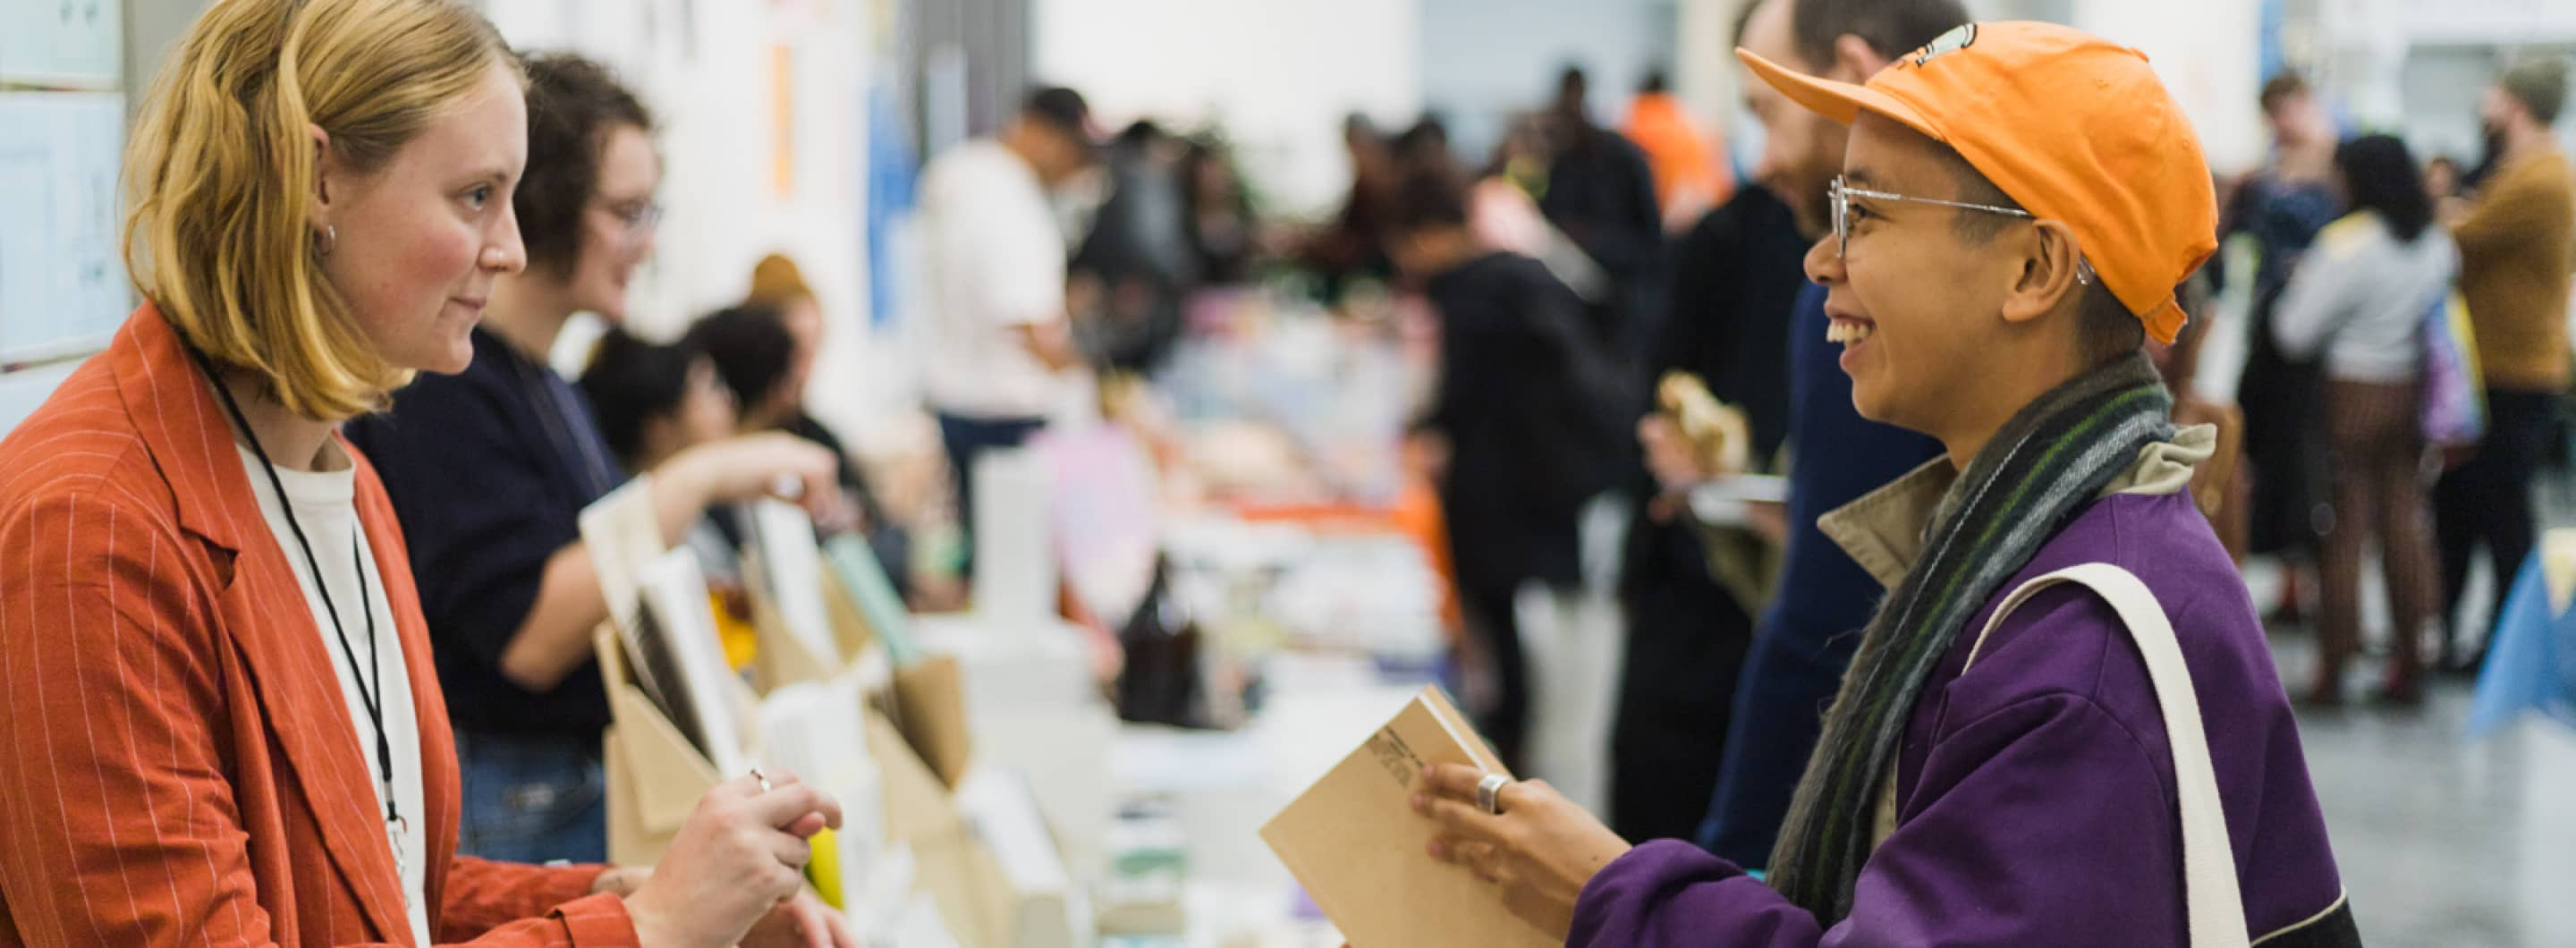 Photograph from VABF 2019 of an exhibitor (wearing an dark orange blazer) standing behind their table of books and exchanging a smile with an attendee, wearing an orange baseball cap and holding a zine with a light beige cover.